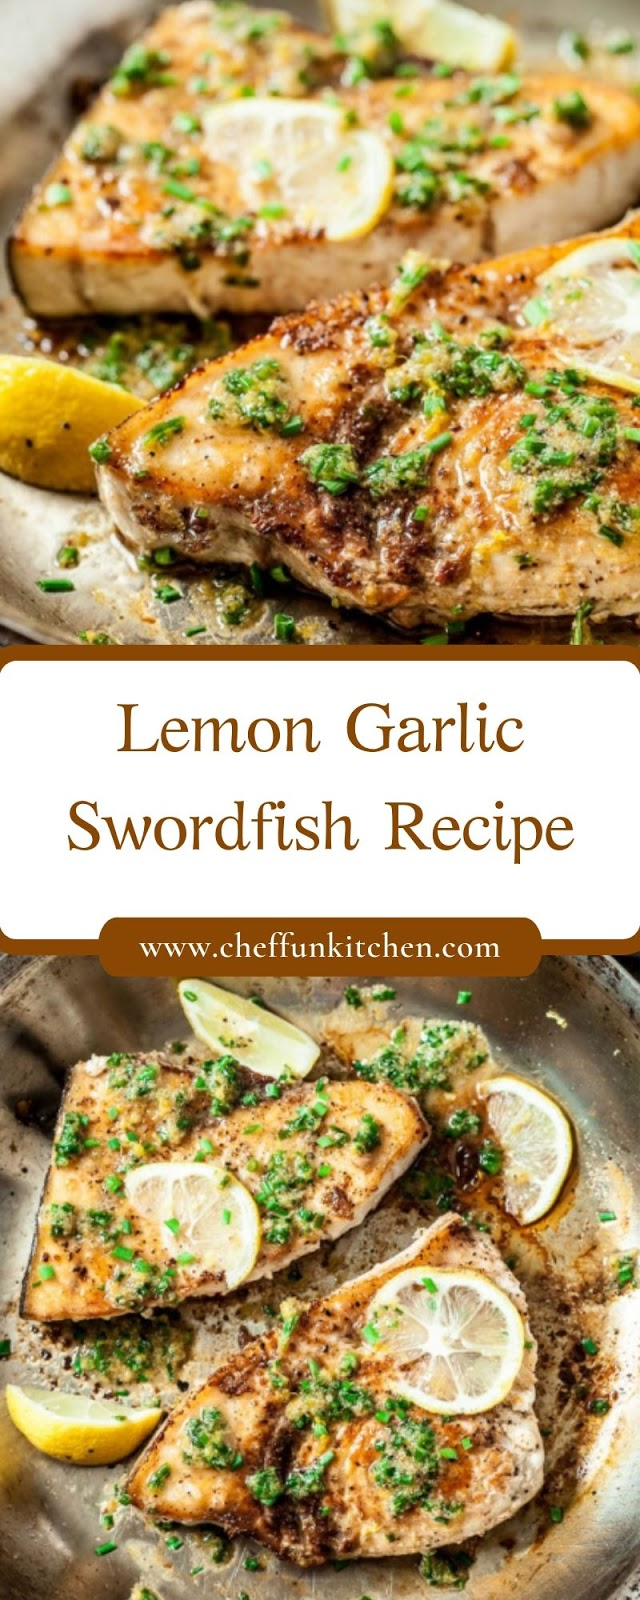 Lemon Garlic Swordfish Recipe